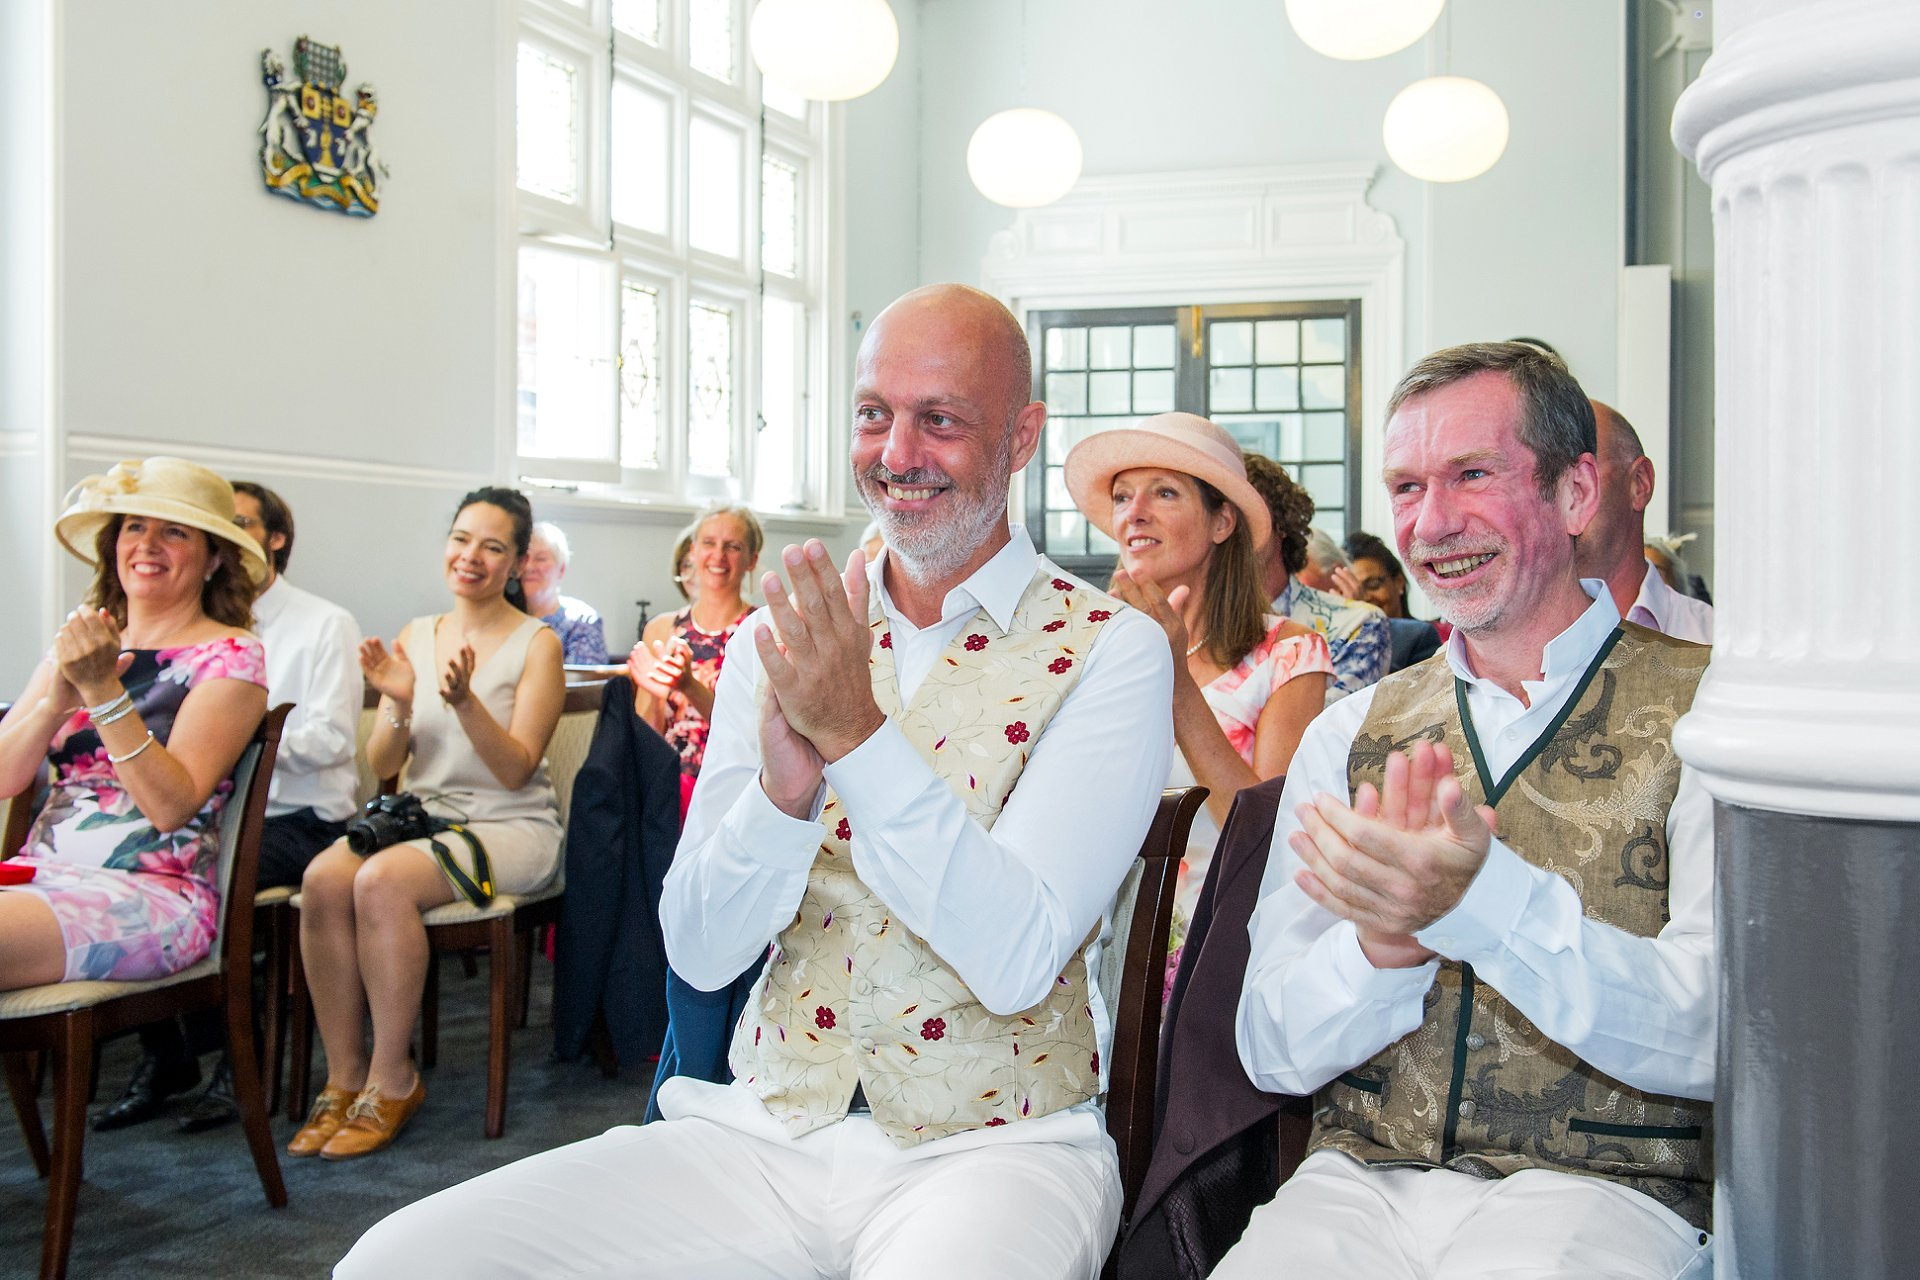 Guests clapping the bride and groom at this French wedding in London